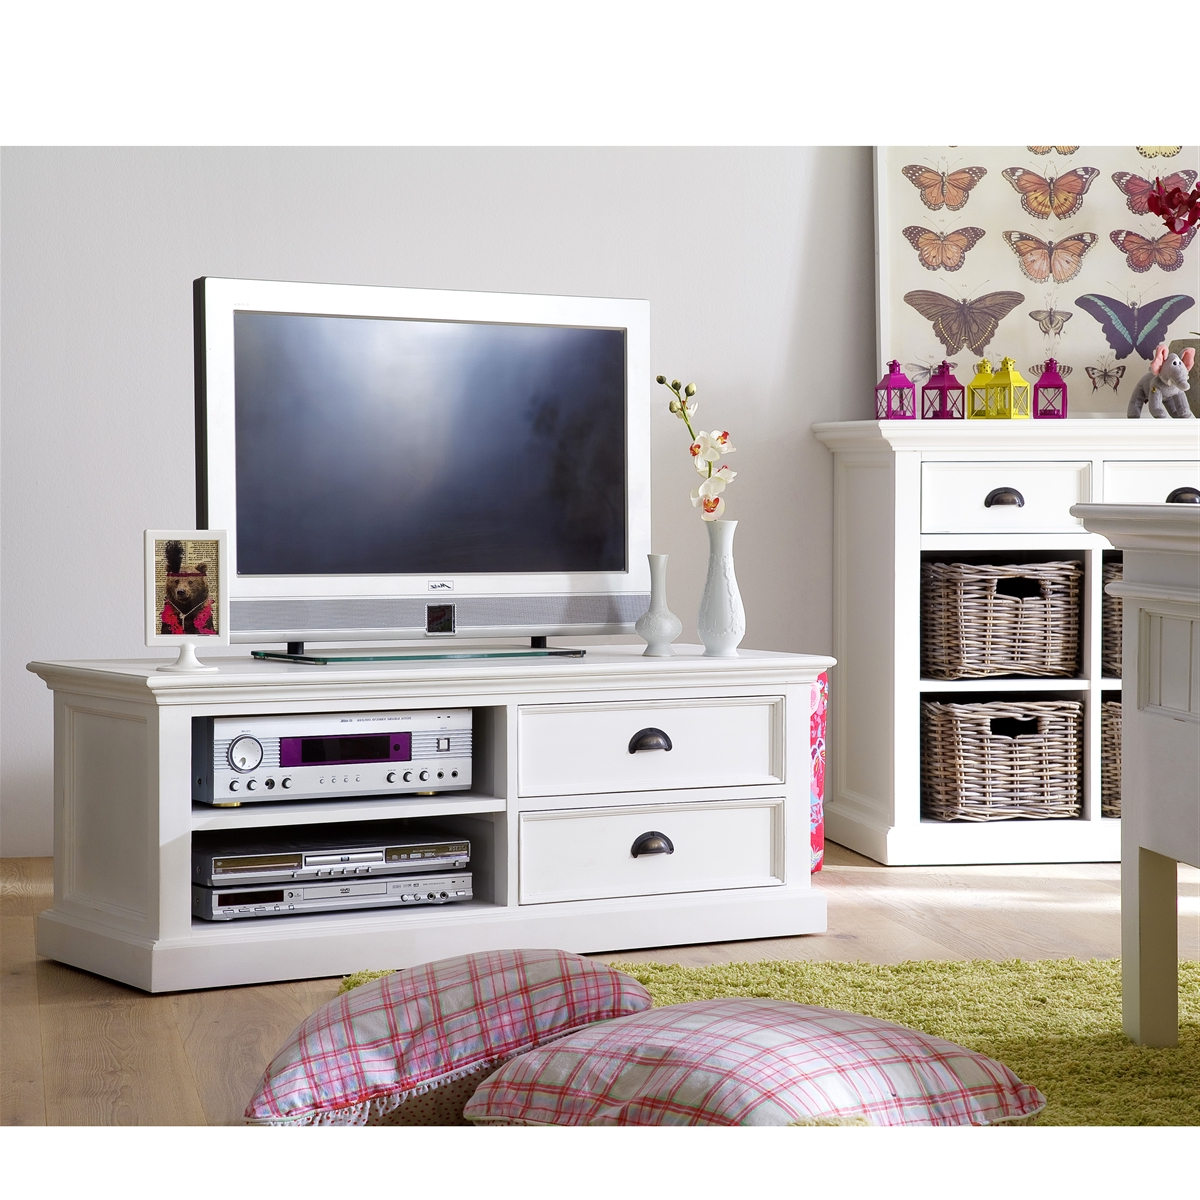 French Country Tv Stands Regarding Trendy Tv Stands: Inspiring White Distressed Tv Stand 2017 Design (View 7 of 20)